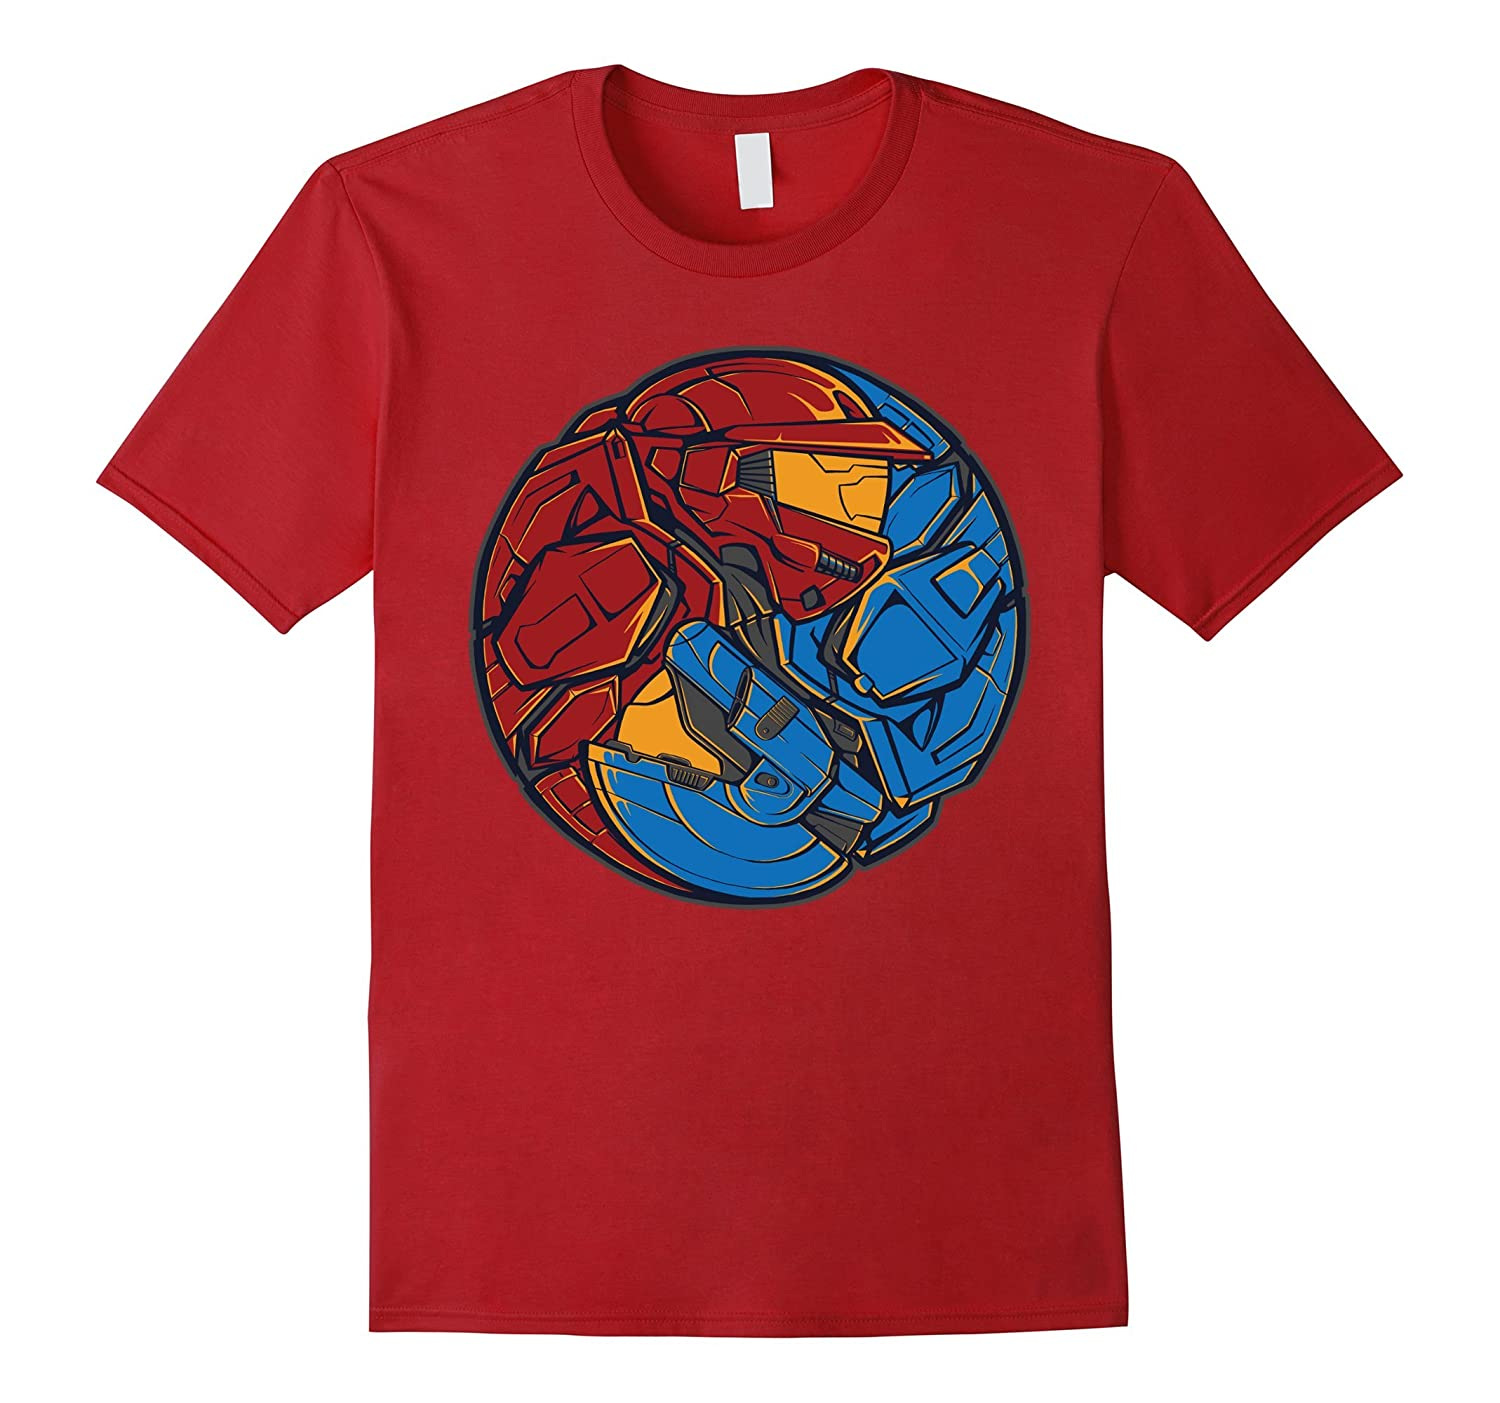 Red vs blue shirt video game t shirt goatstee for Red and blue t shirt